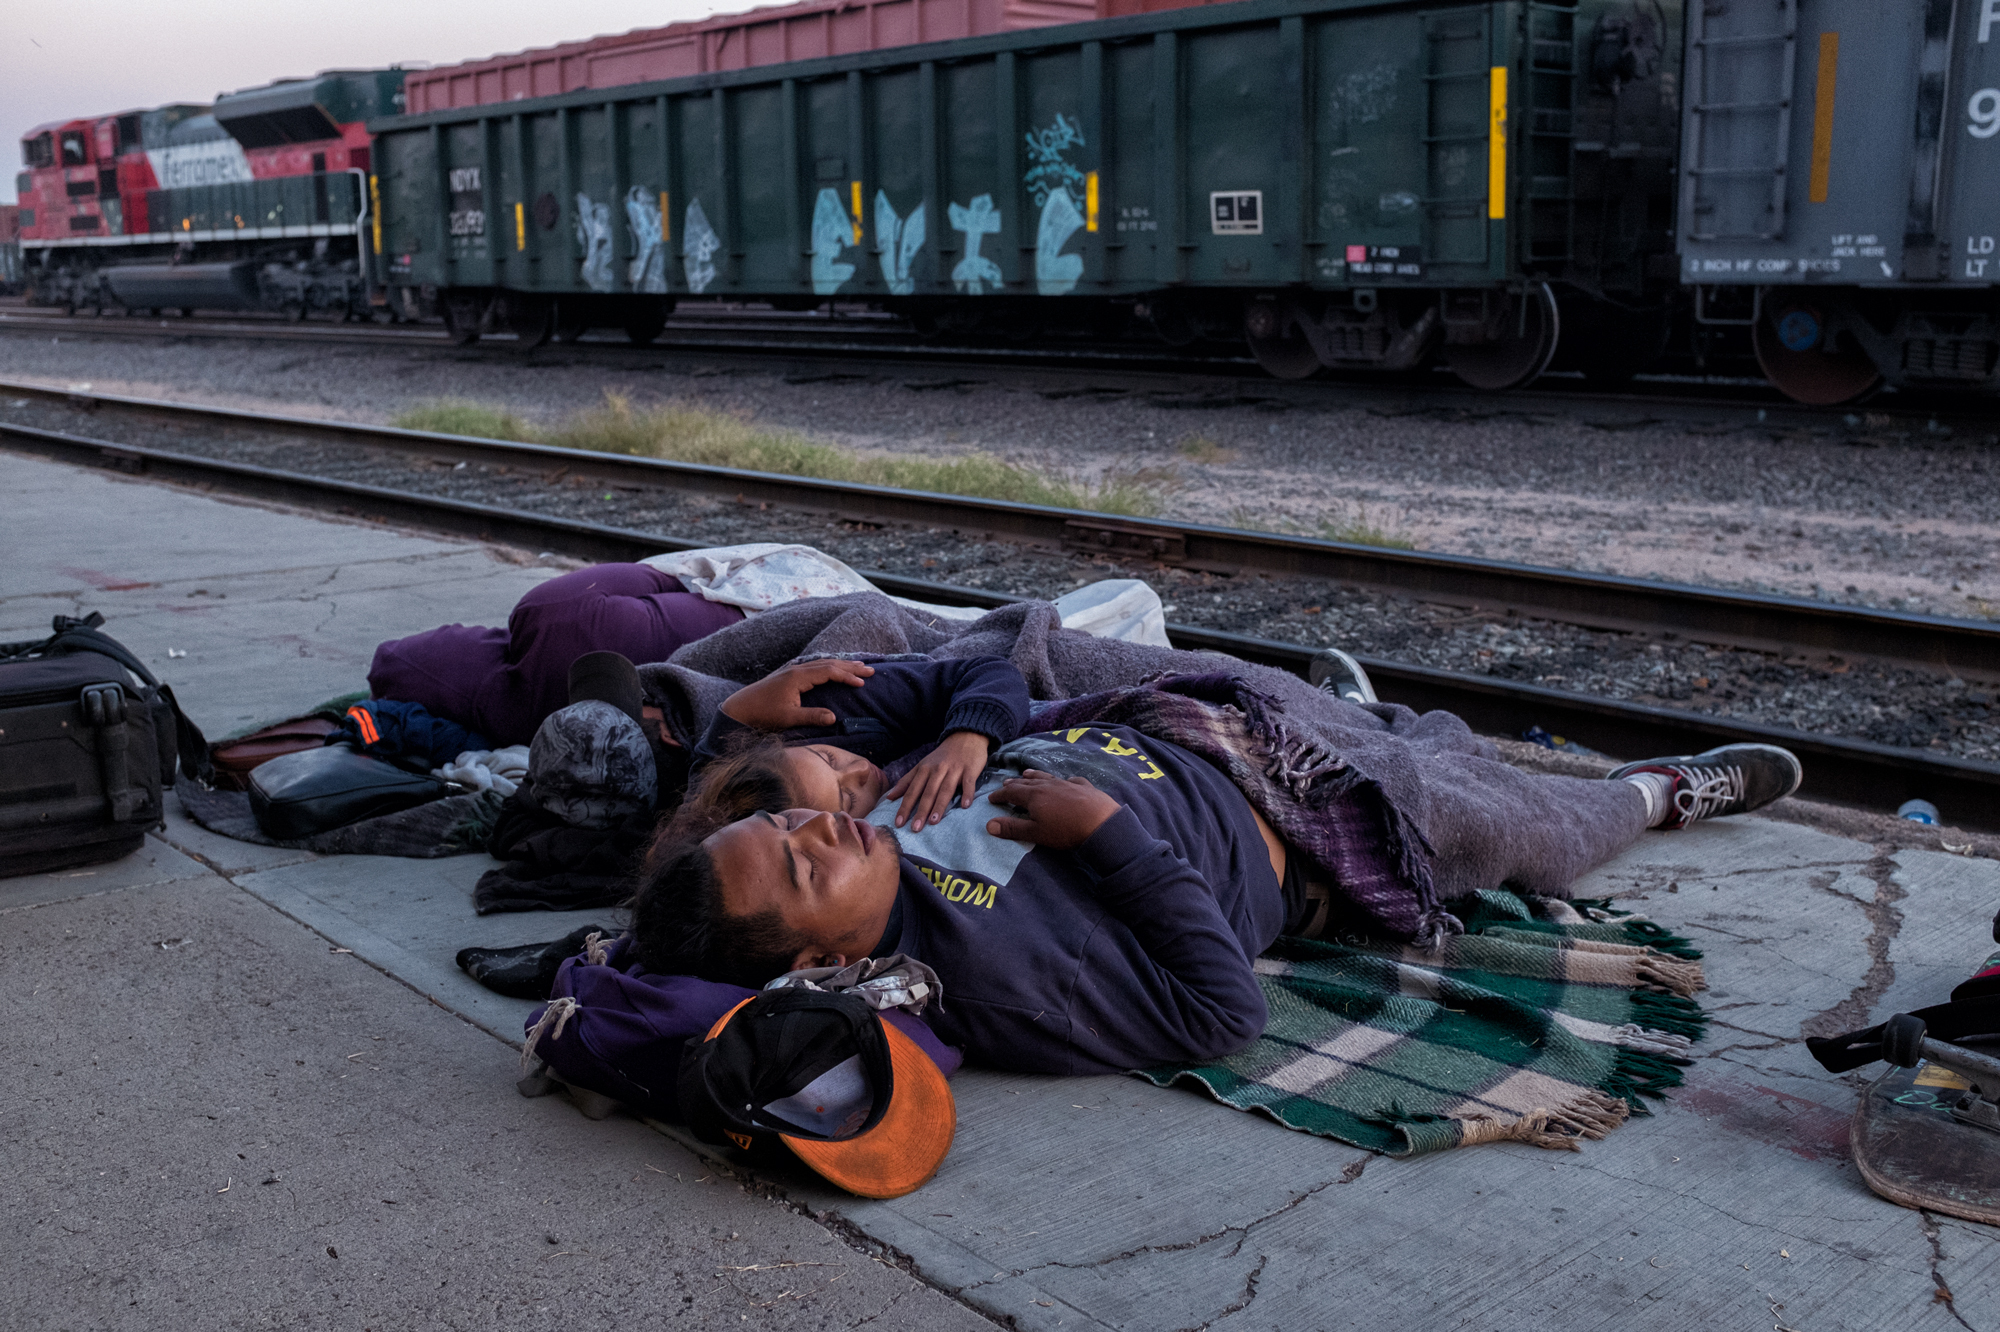 Refugee caravan members sleep near the railroad tracks in Sonora. On April 9, 2017, a group of Central Americans from Guatemala, El Salvador, Honduras and Nicaragua joined to form the 2017 Refugee Caravan, or Viacrucis 2017, put together by organizations from Mexico and the U.S.